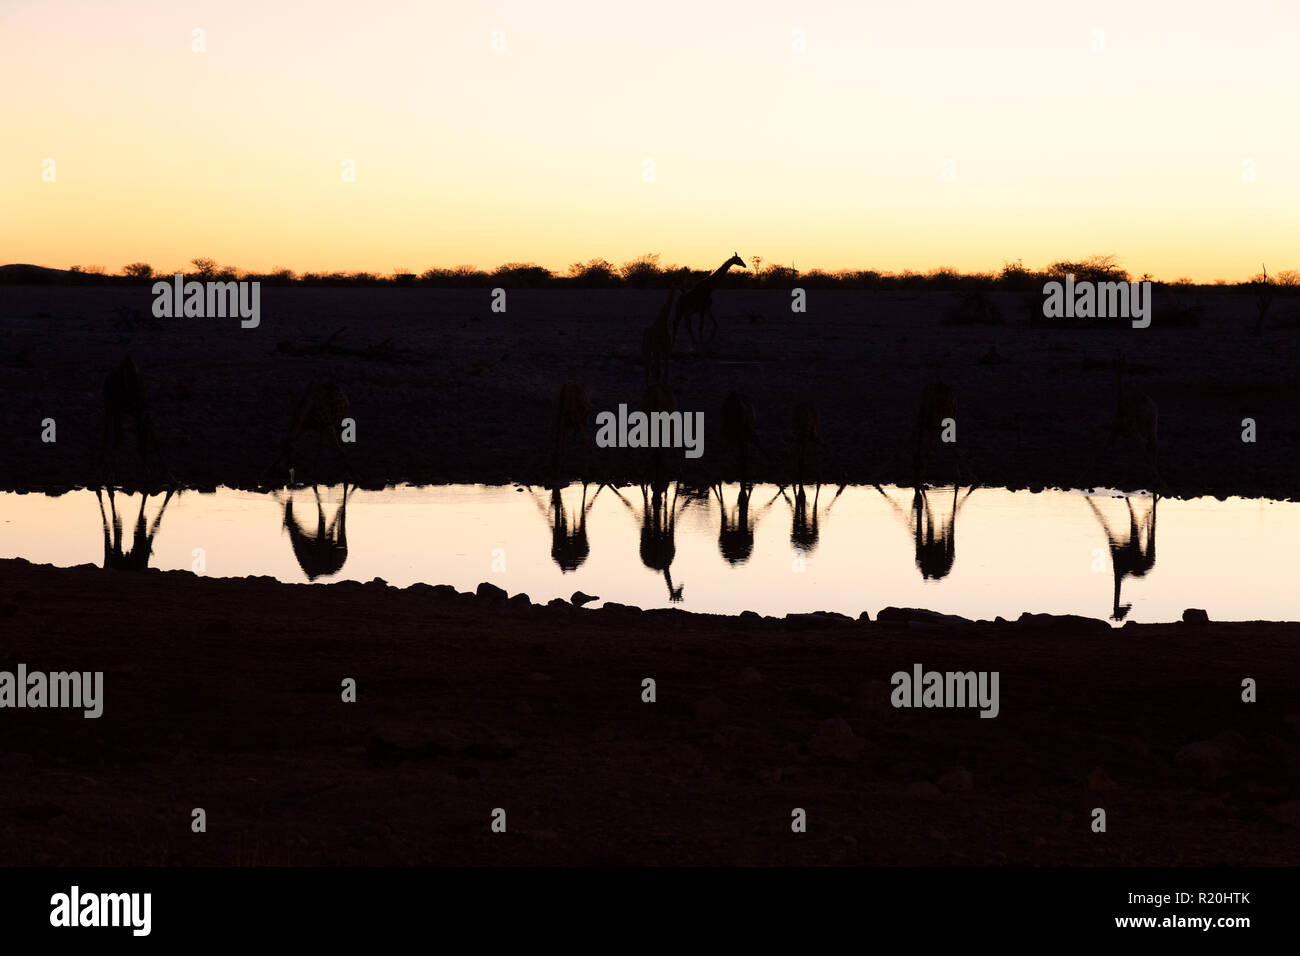 namibia-travel-reflections-of-a-herd-of-giraffes-drinking-from-a-waterhole-at-sunset-okaukuejo-etosha-national-park-namibia-africa-R20HTK.jpg